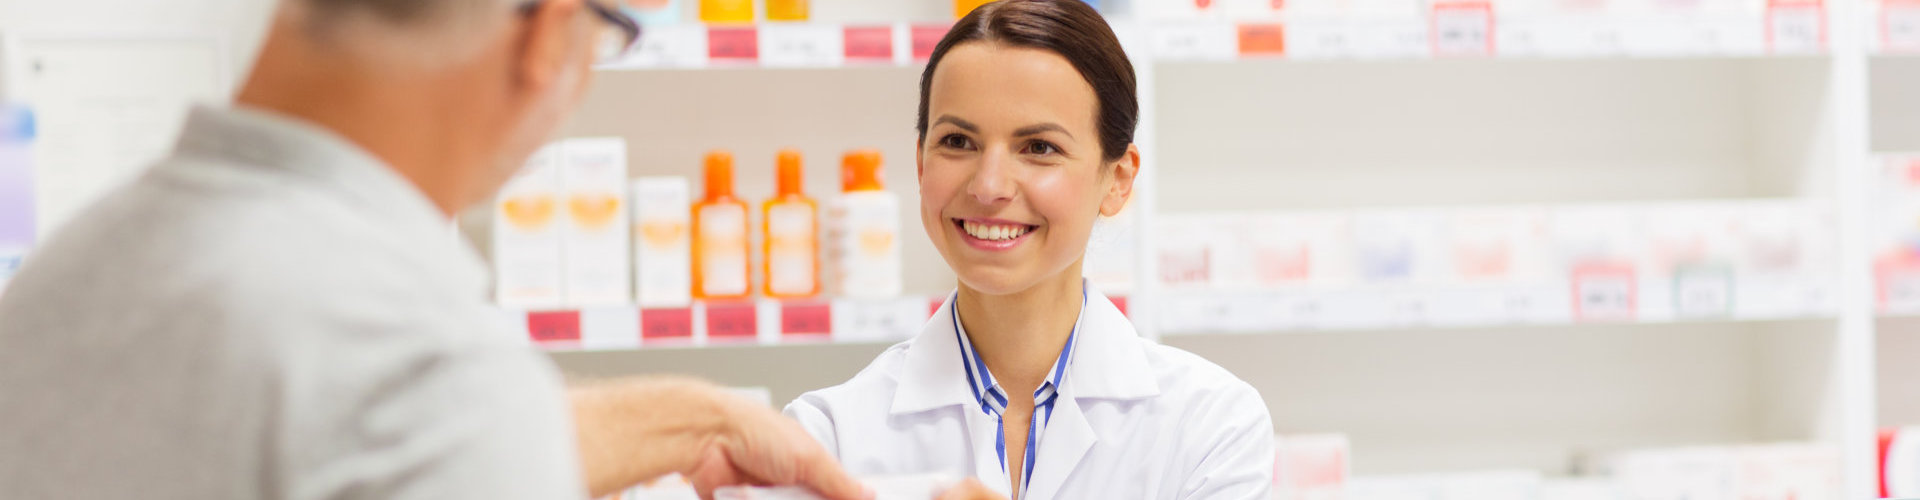 pharmacist attending to her customer